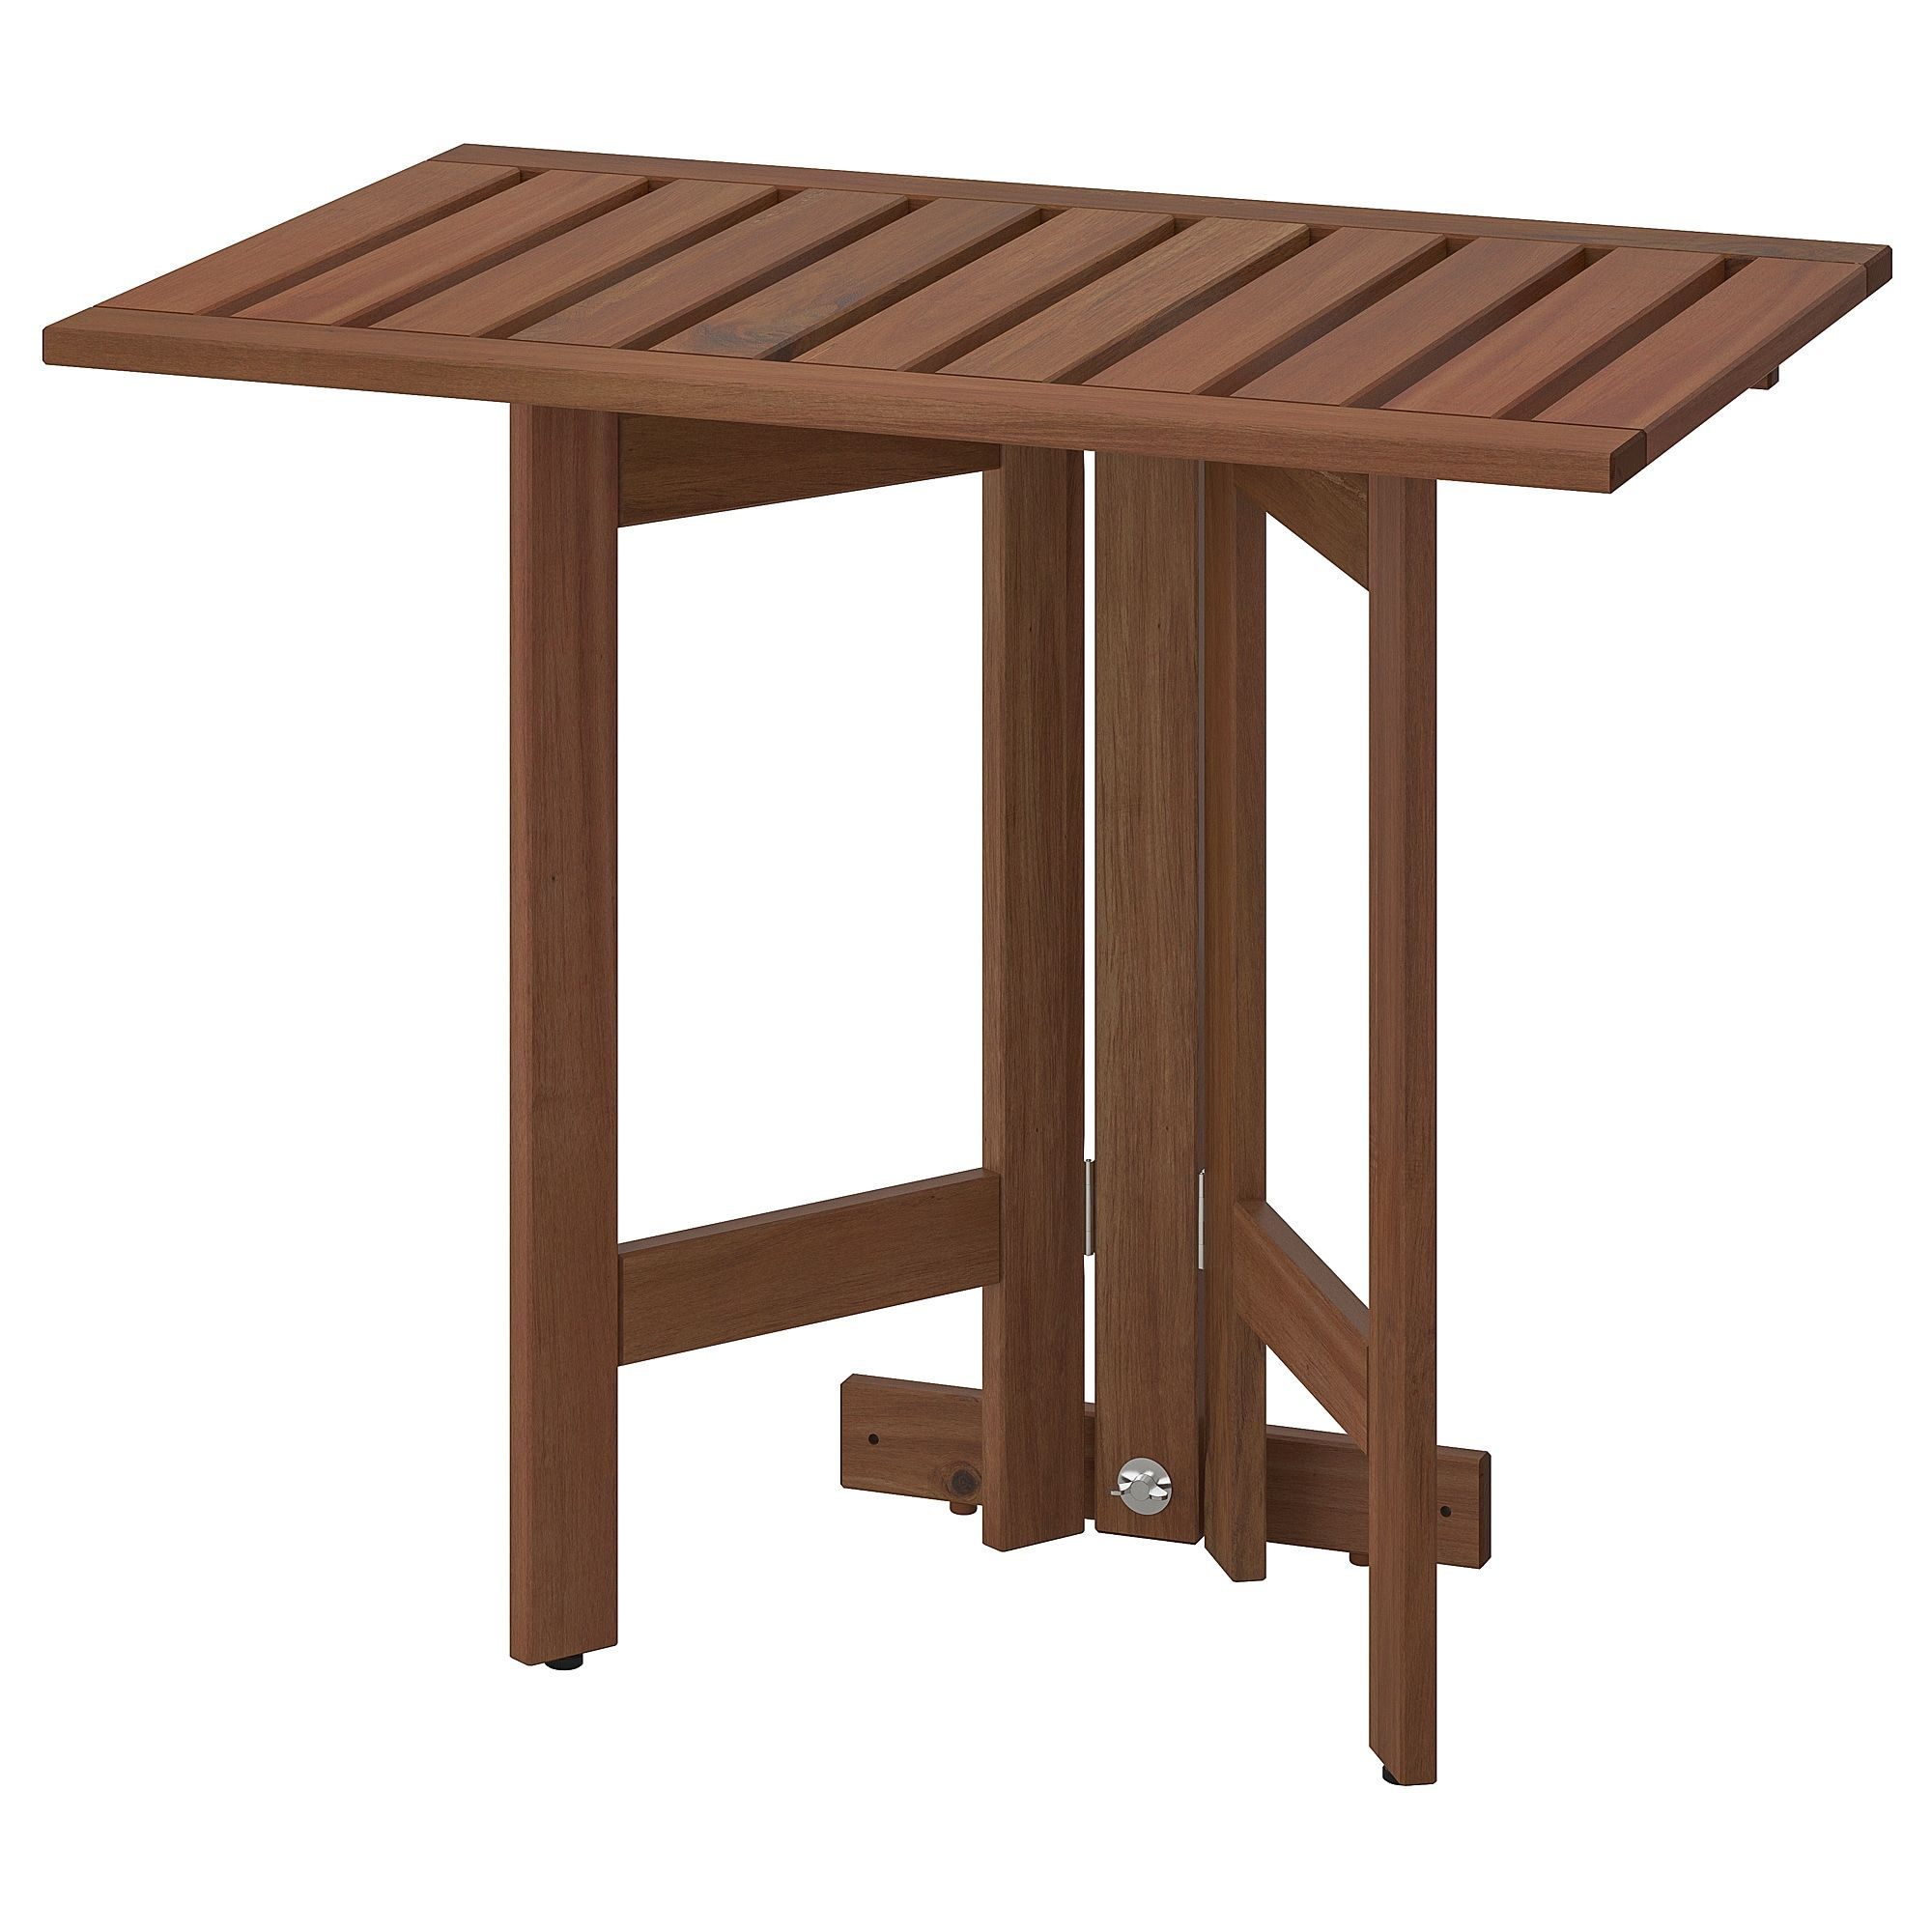 ÄPPLARÖ Gateleg table for wall, outdoor brown stained